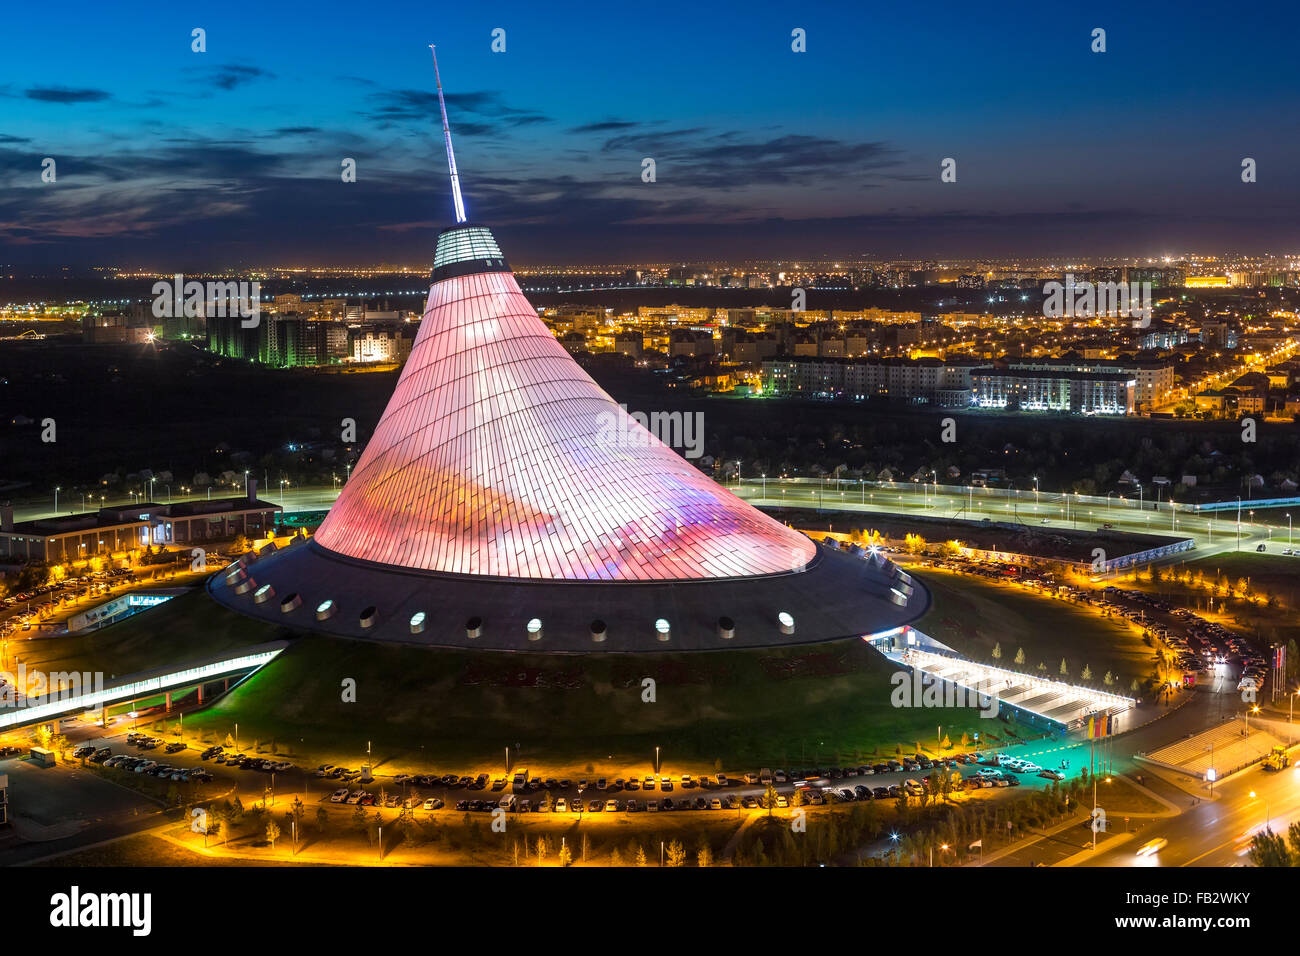 Central Asia, Kazakhstan, Astana, Night view over Khan Shatyr entertainment center - Stock Image